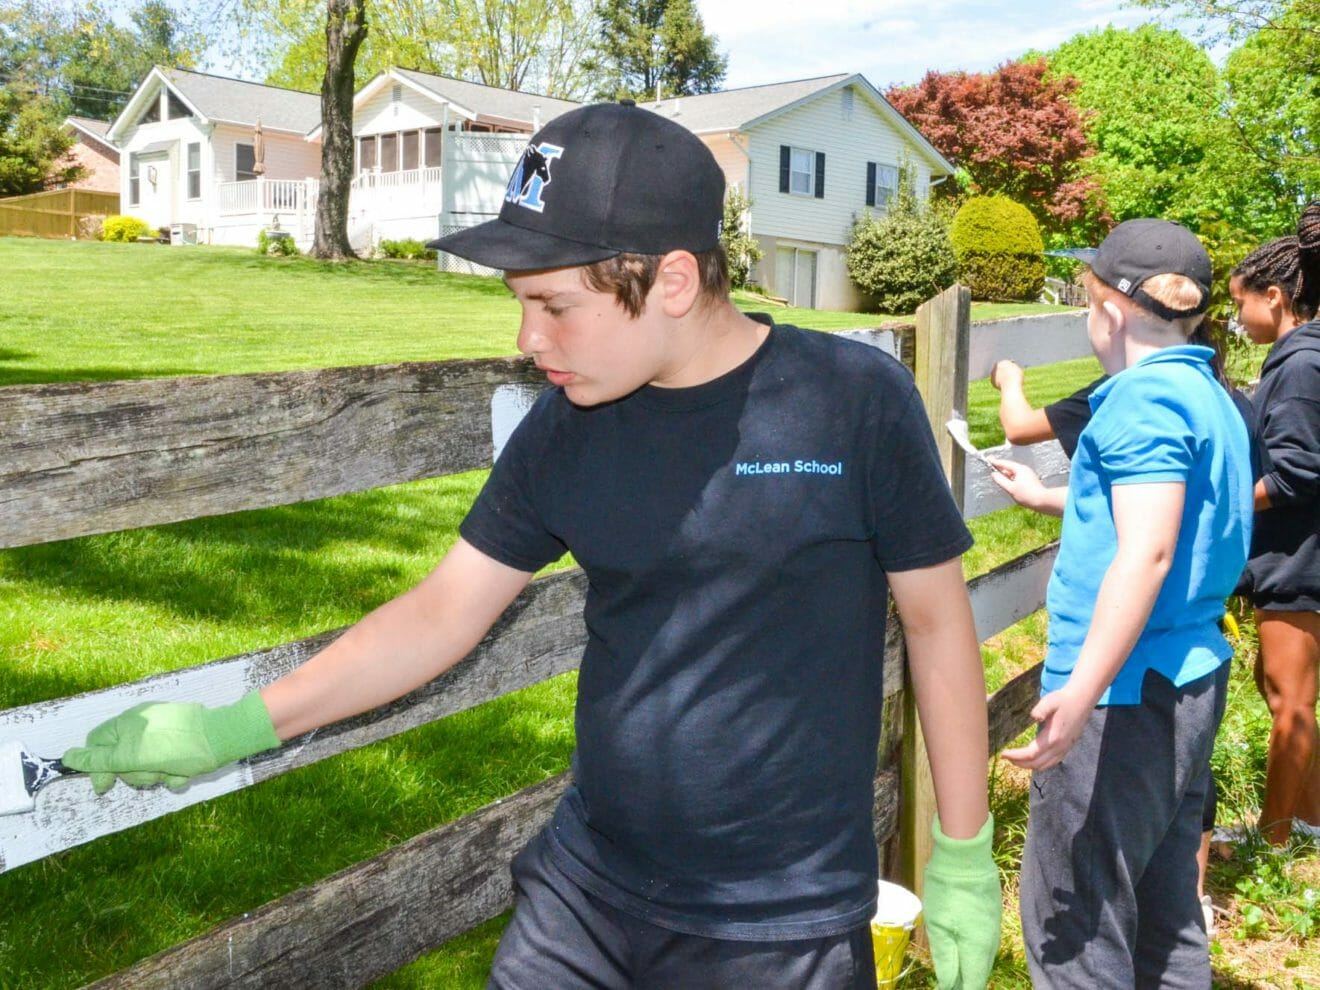 Middle school students paint fence for community service